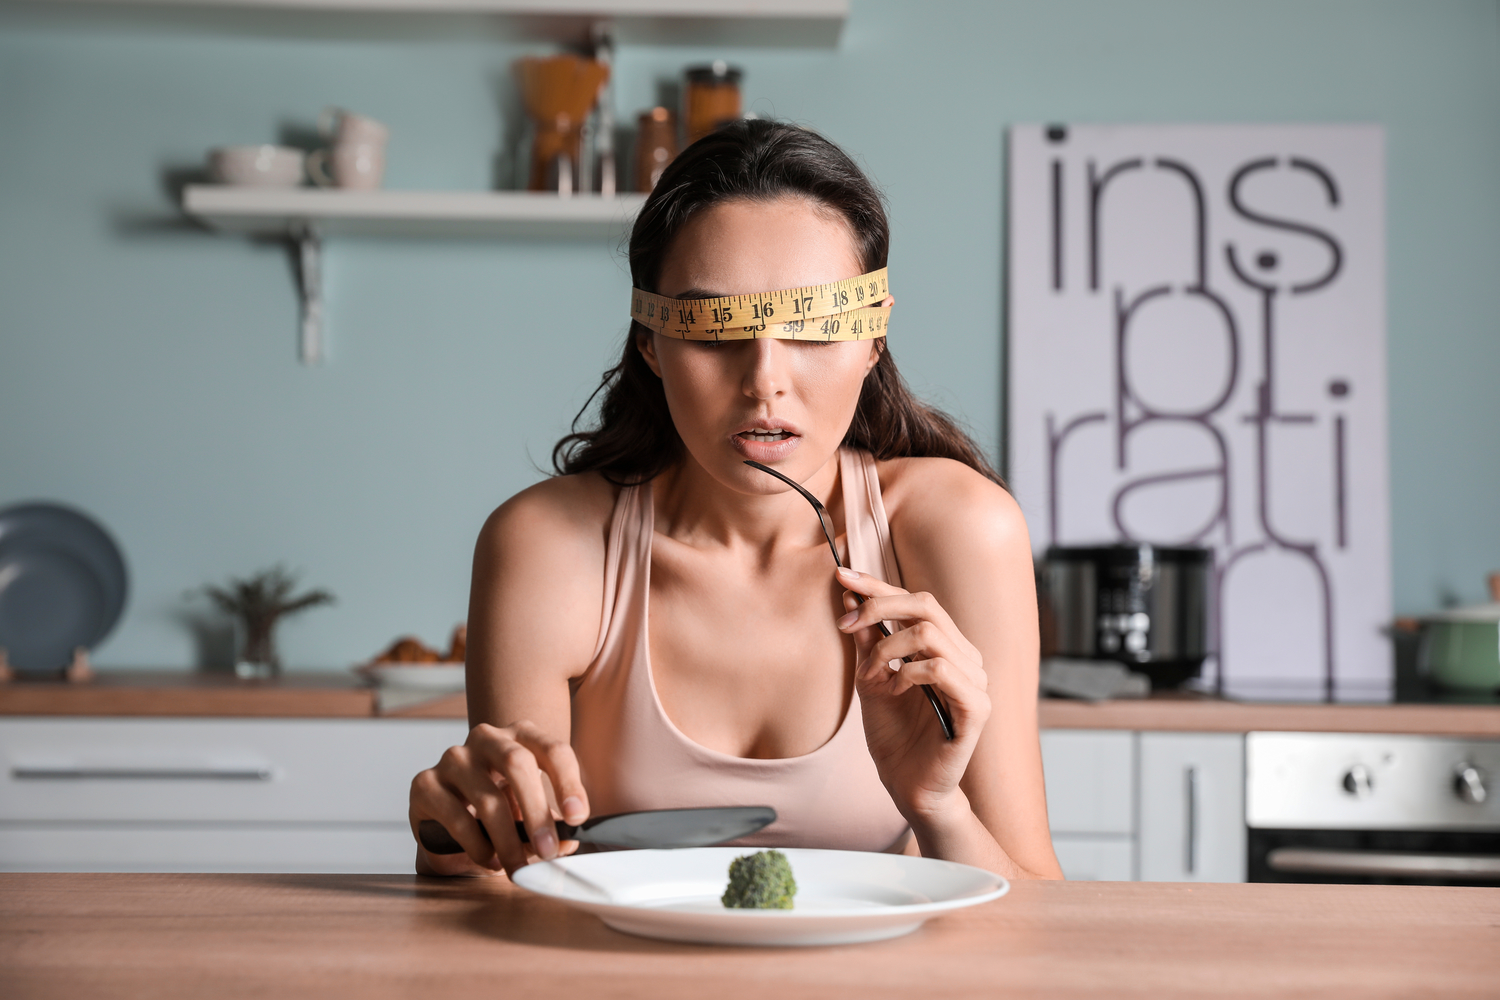 Intuitive Eating is a non-diet wellness approach to choose food that feels good in your body | Shutterstock